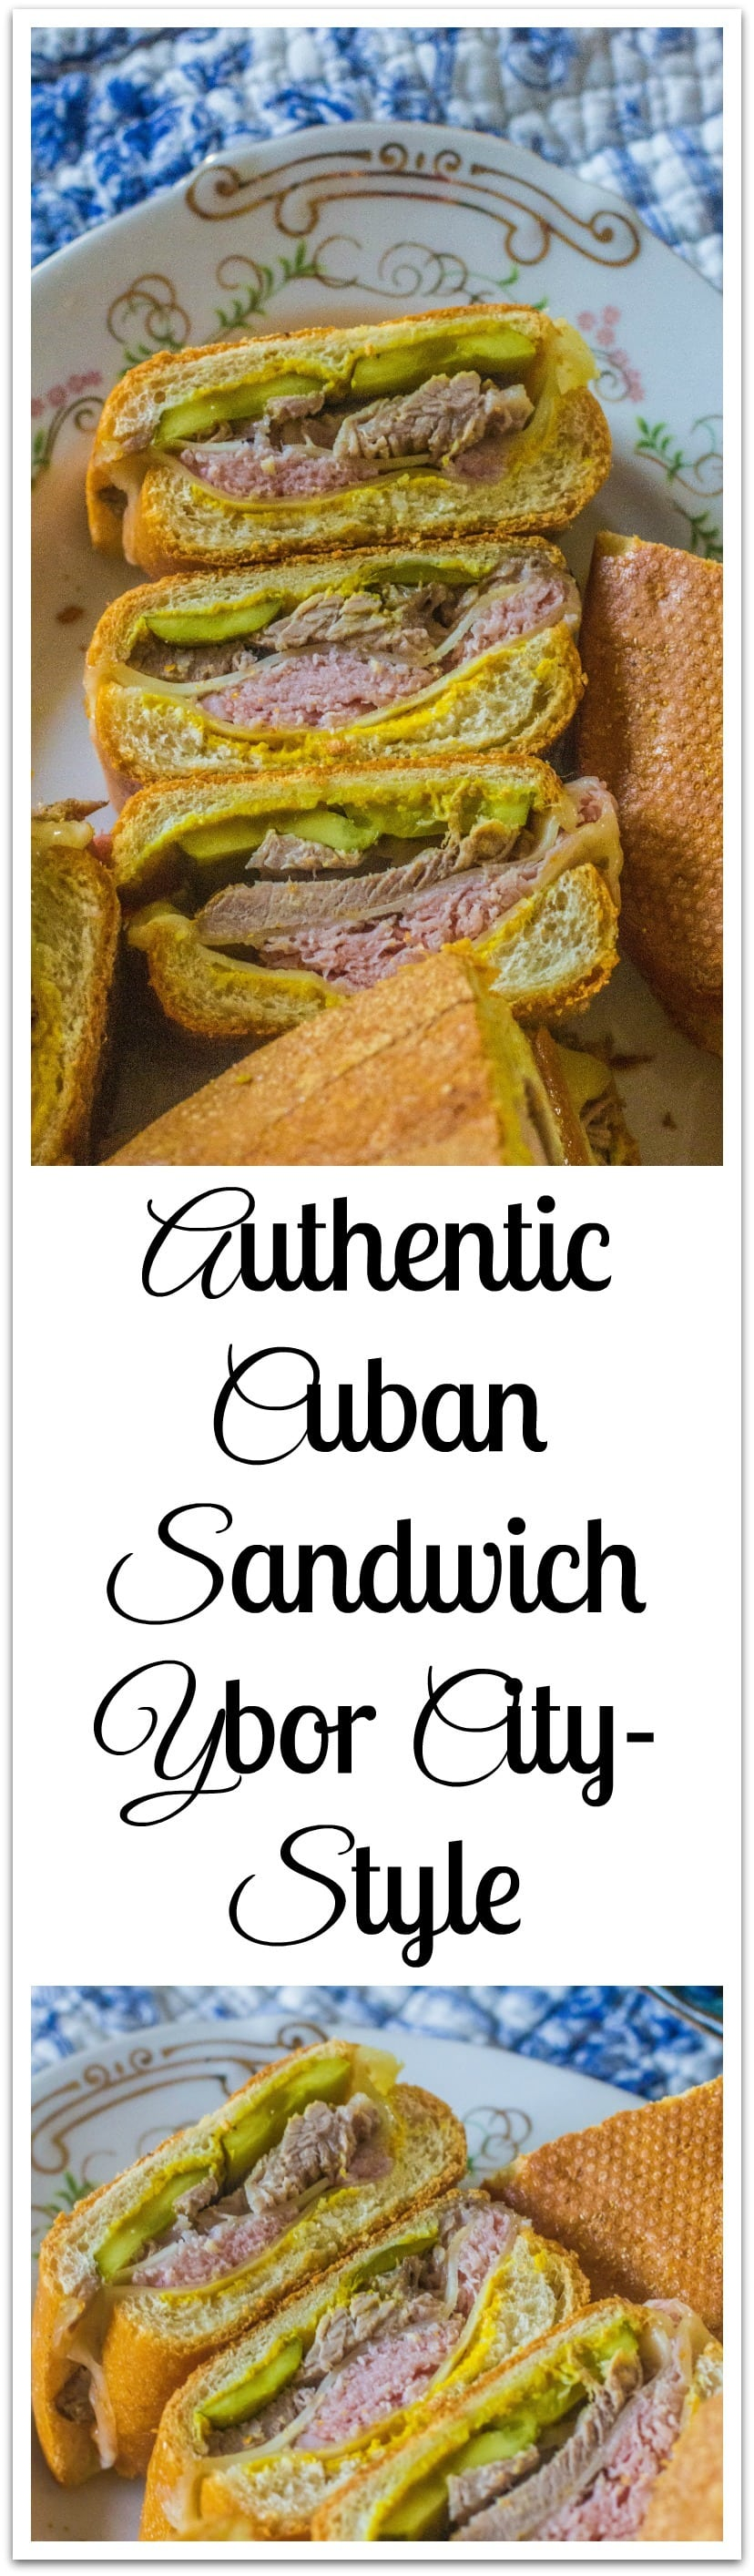 Cuban bread, mustard, dill pickles, ham, pork and Swiss cheese create this iconic sandwich. #CubanSandwich #DeliciousSandwich